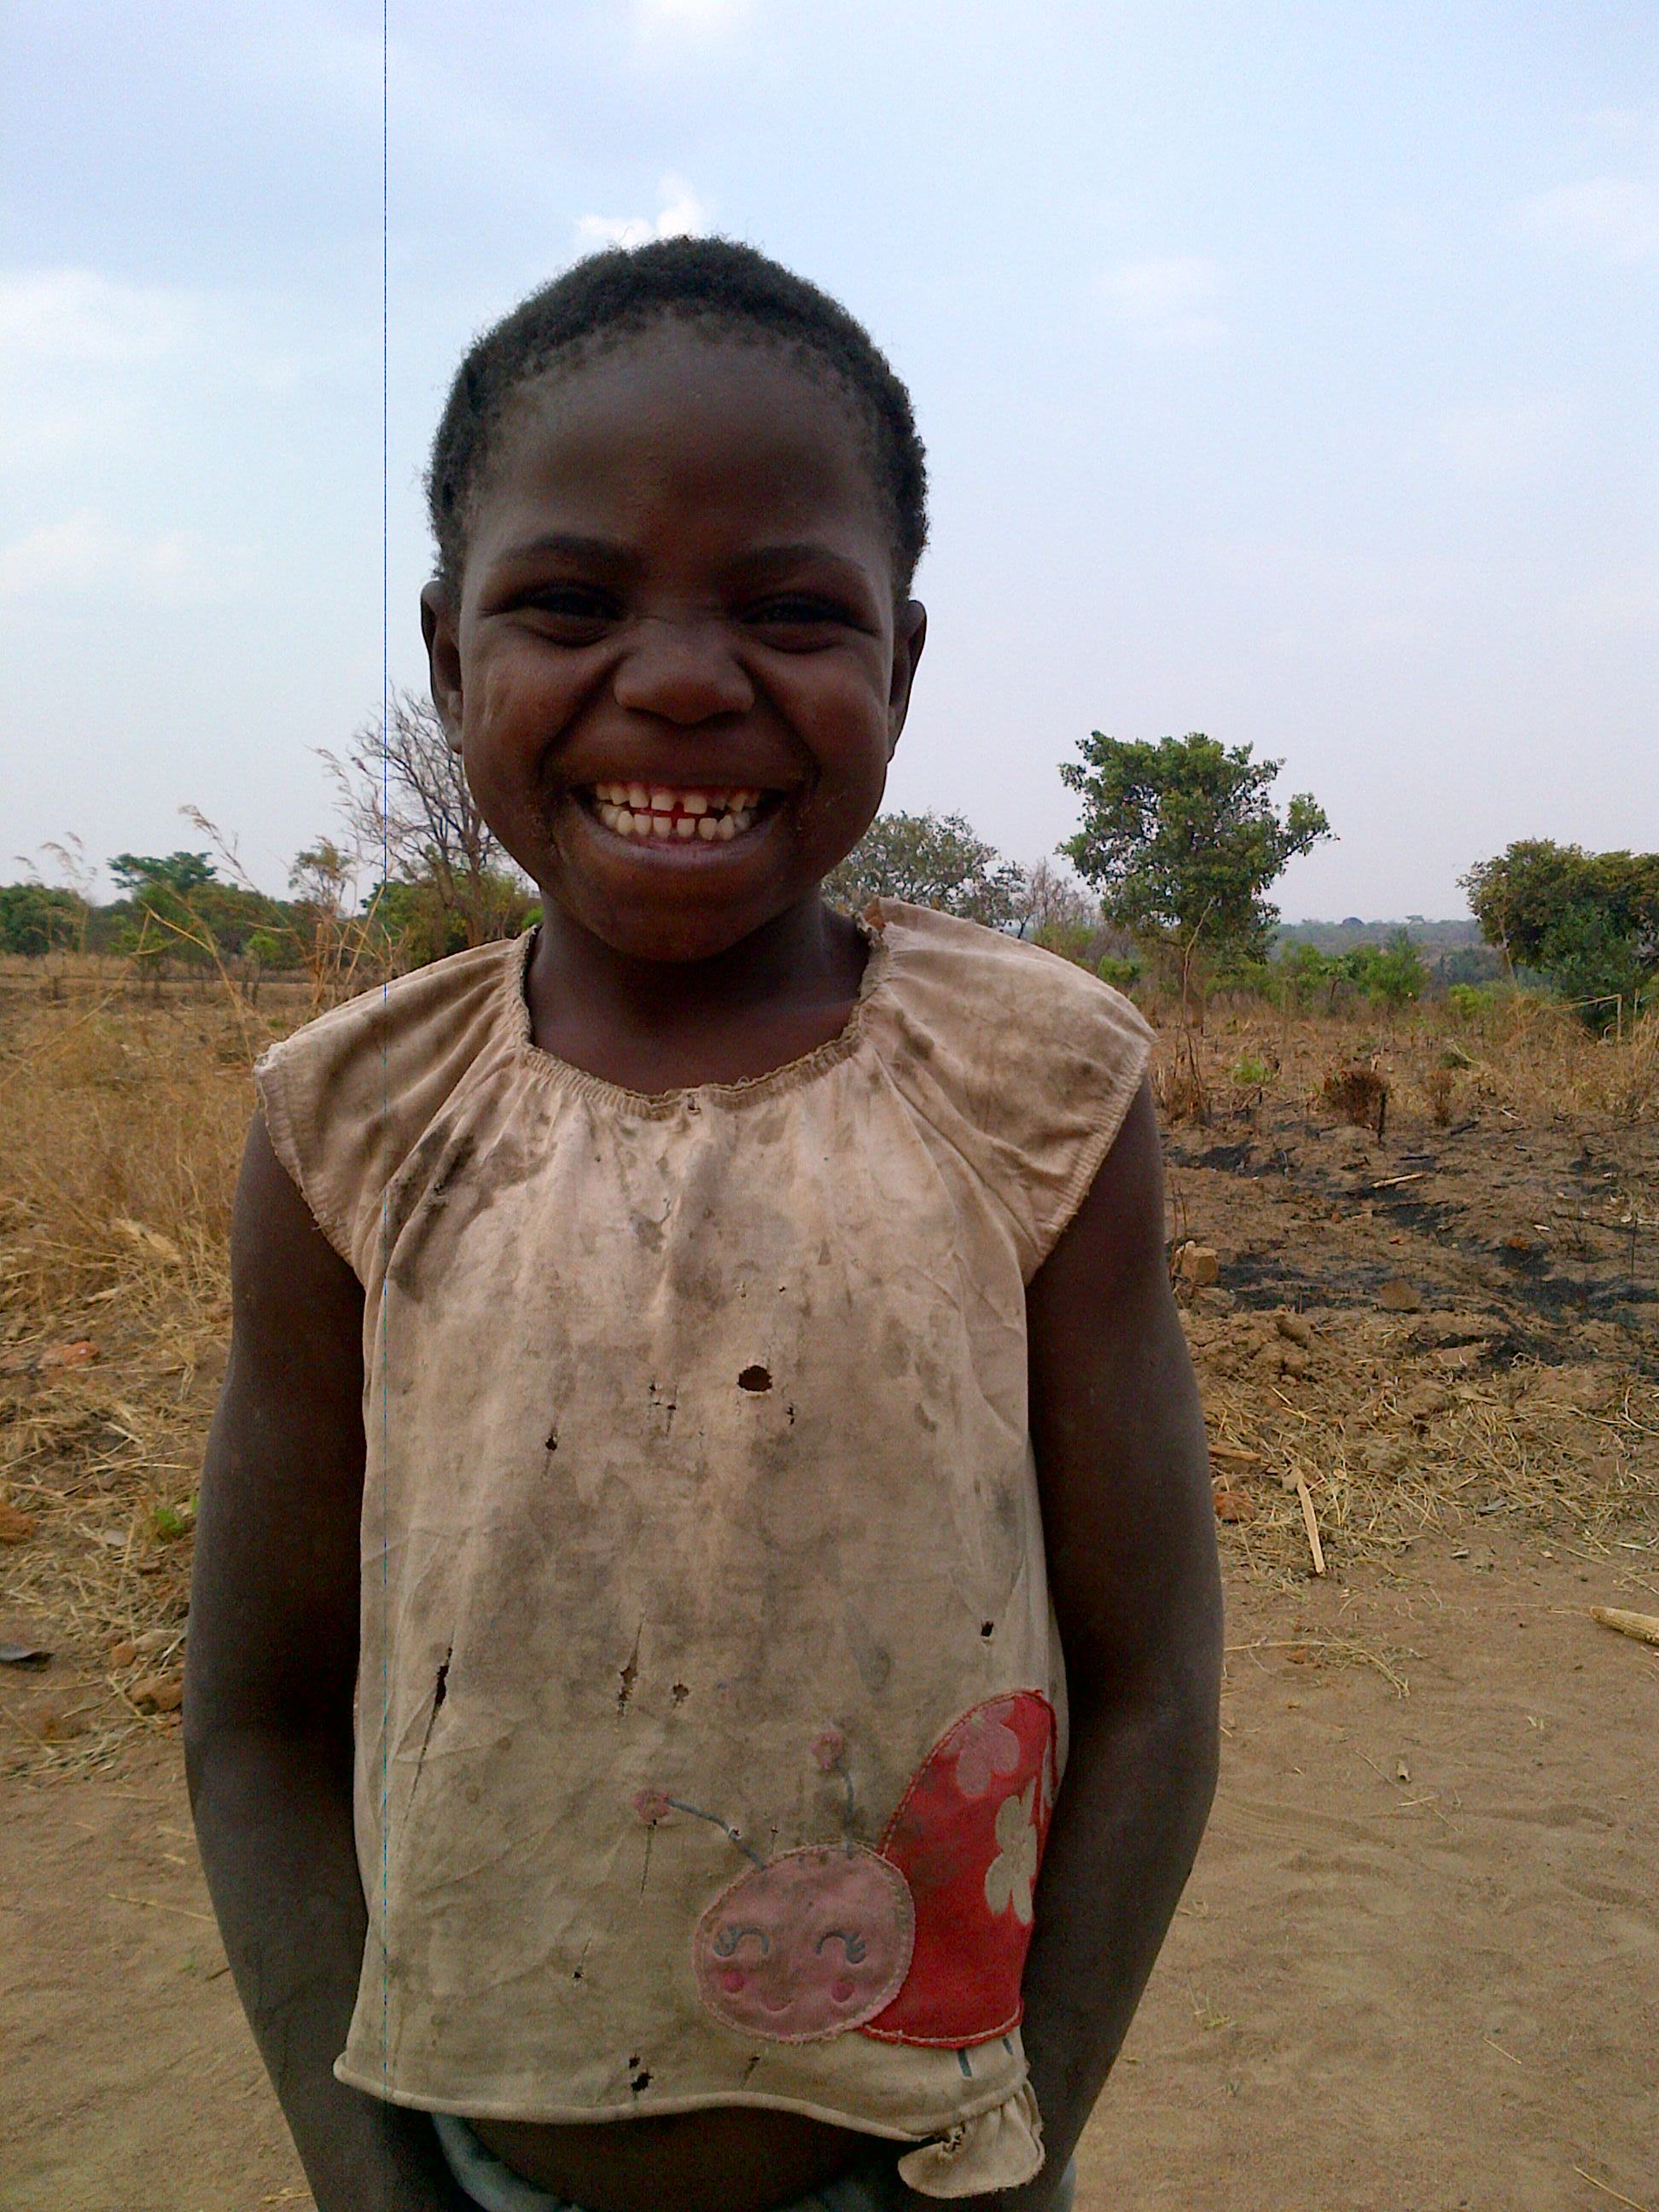 Eileen, another little beautiful child in the village.